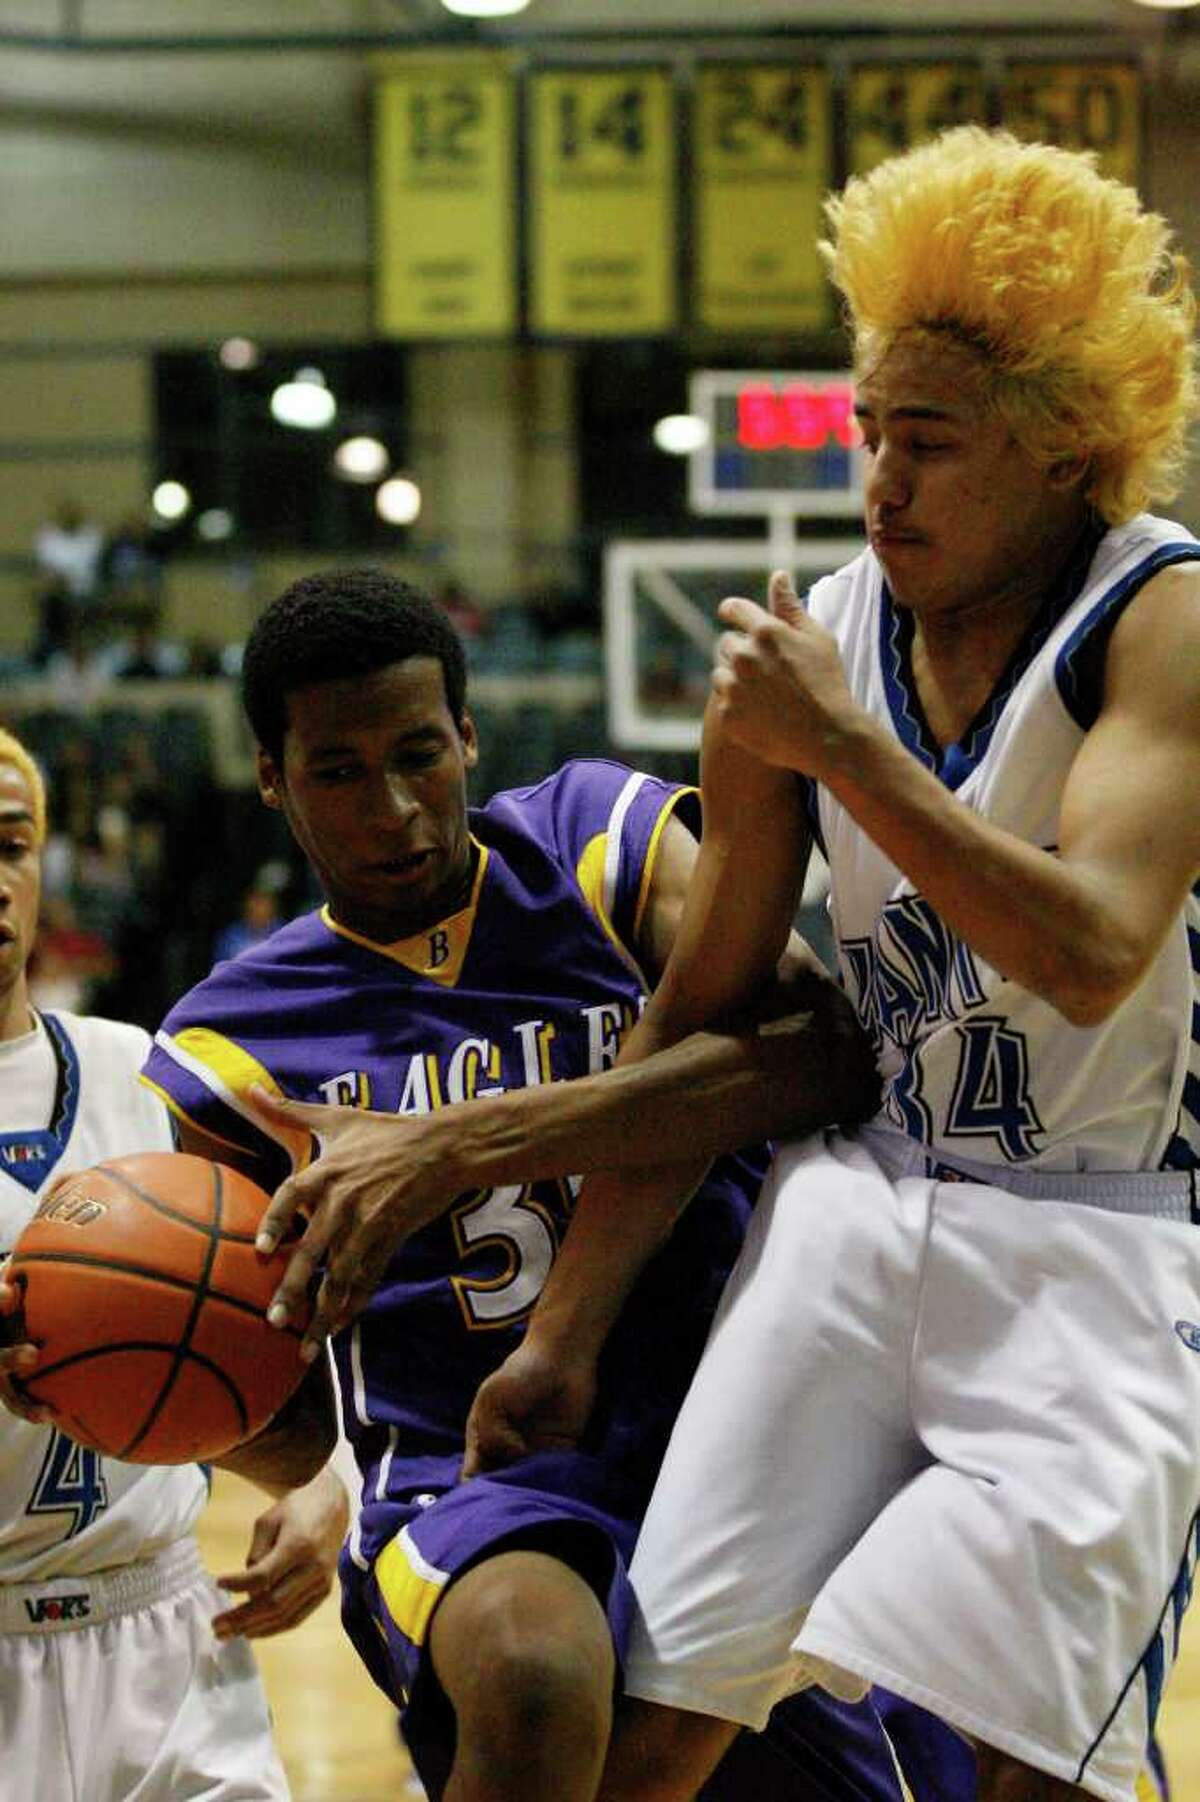 BKB -- Lanier Voks Ajax Reyes, right, battles it out with Brackenridge Eagles Emmanual Johnson in the Region IV Quarterfinals at Greehey Arena of St. Mary's University, Wednesday, March 2, 2011. Lanier went on to win, 51-47. JERRY LARA/glara@express-news.net